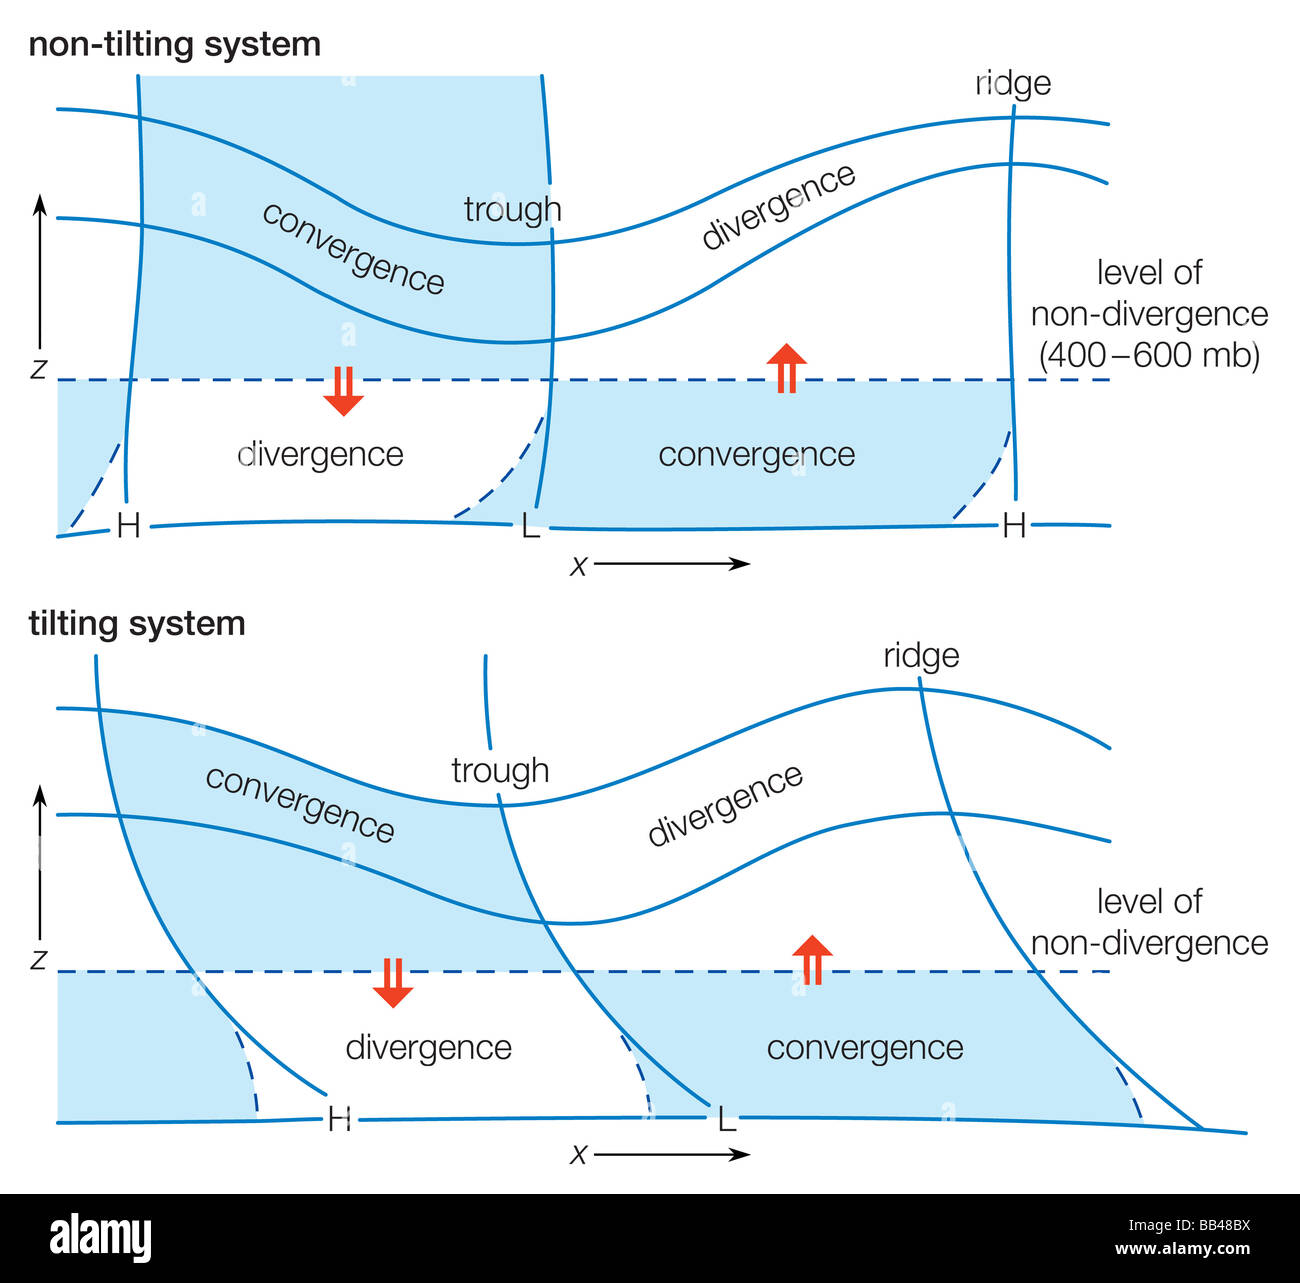 hight resolution of diagram of a wave system depicting typical divergence and convergence distributions for non tilting and tilting systems